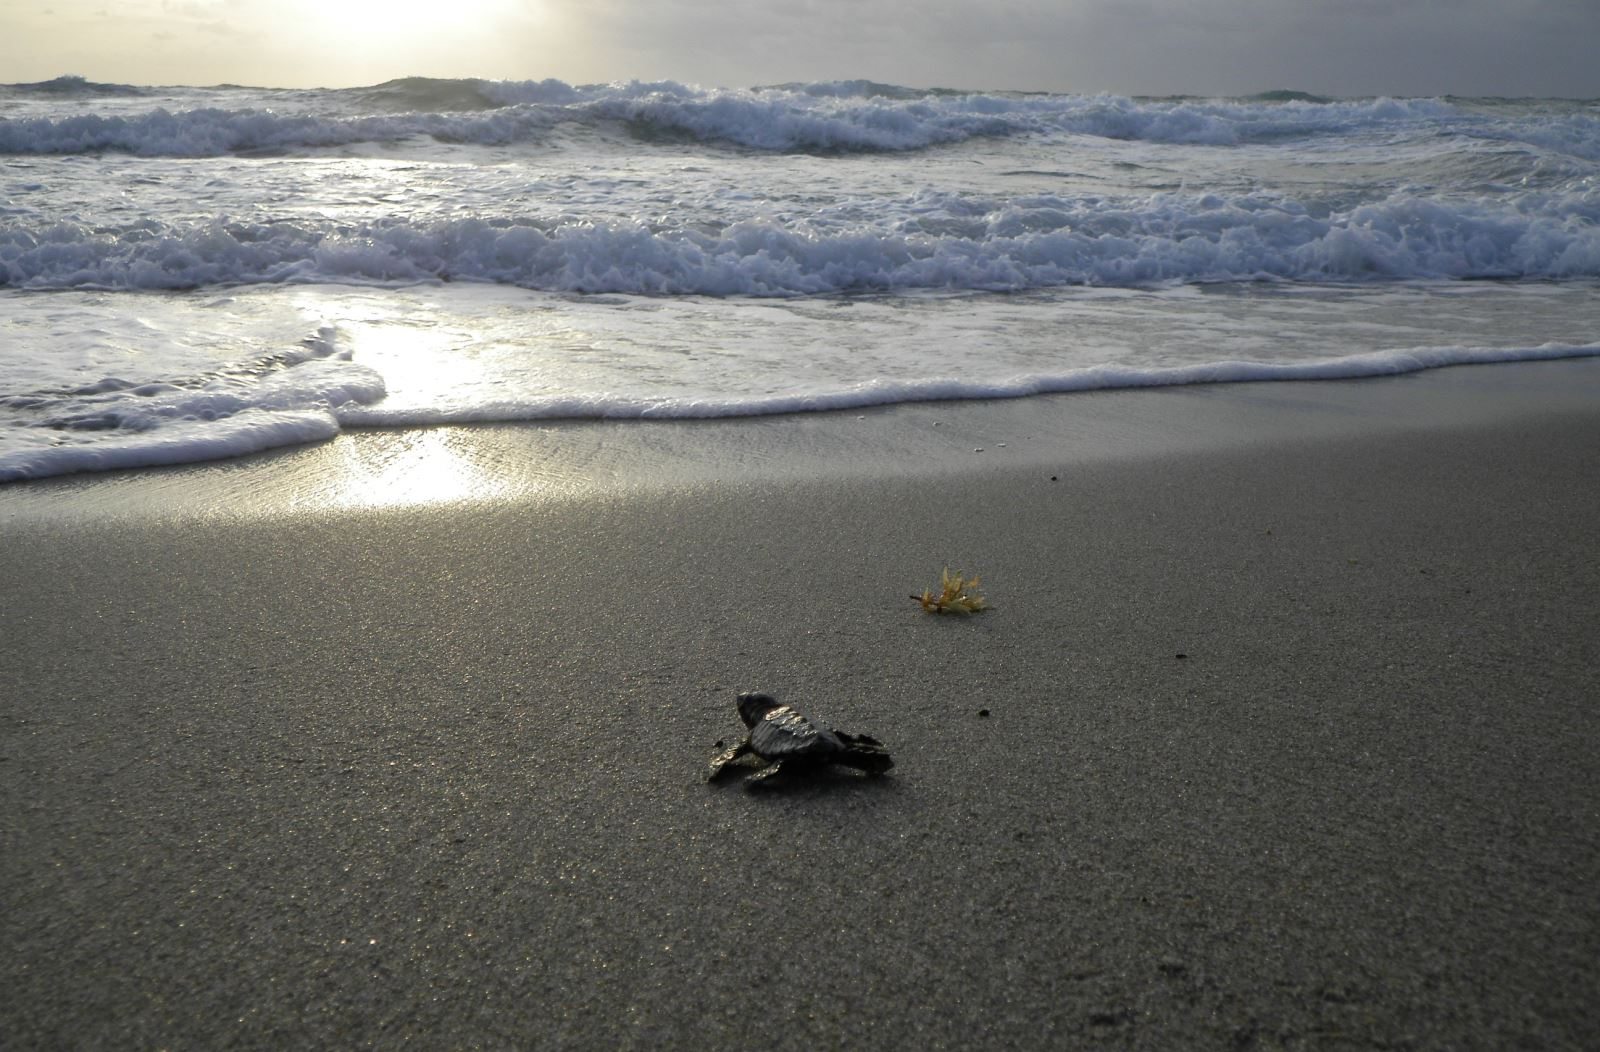 Loggerhead hatchling headed for the ocean